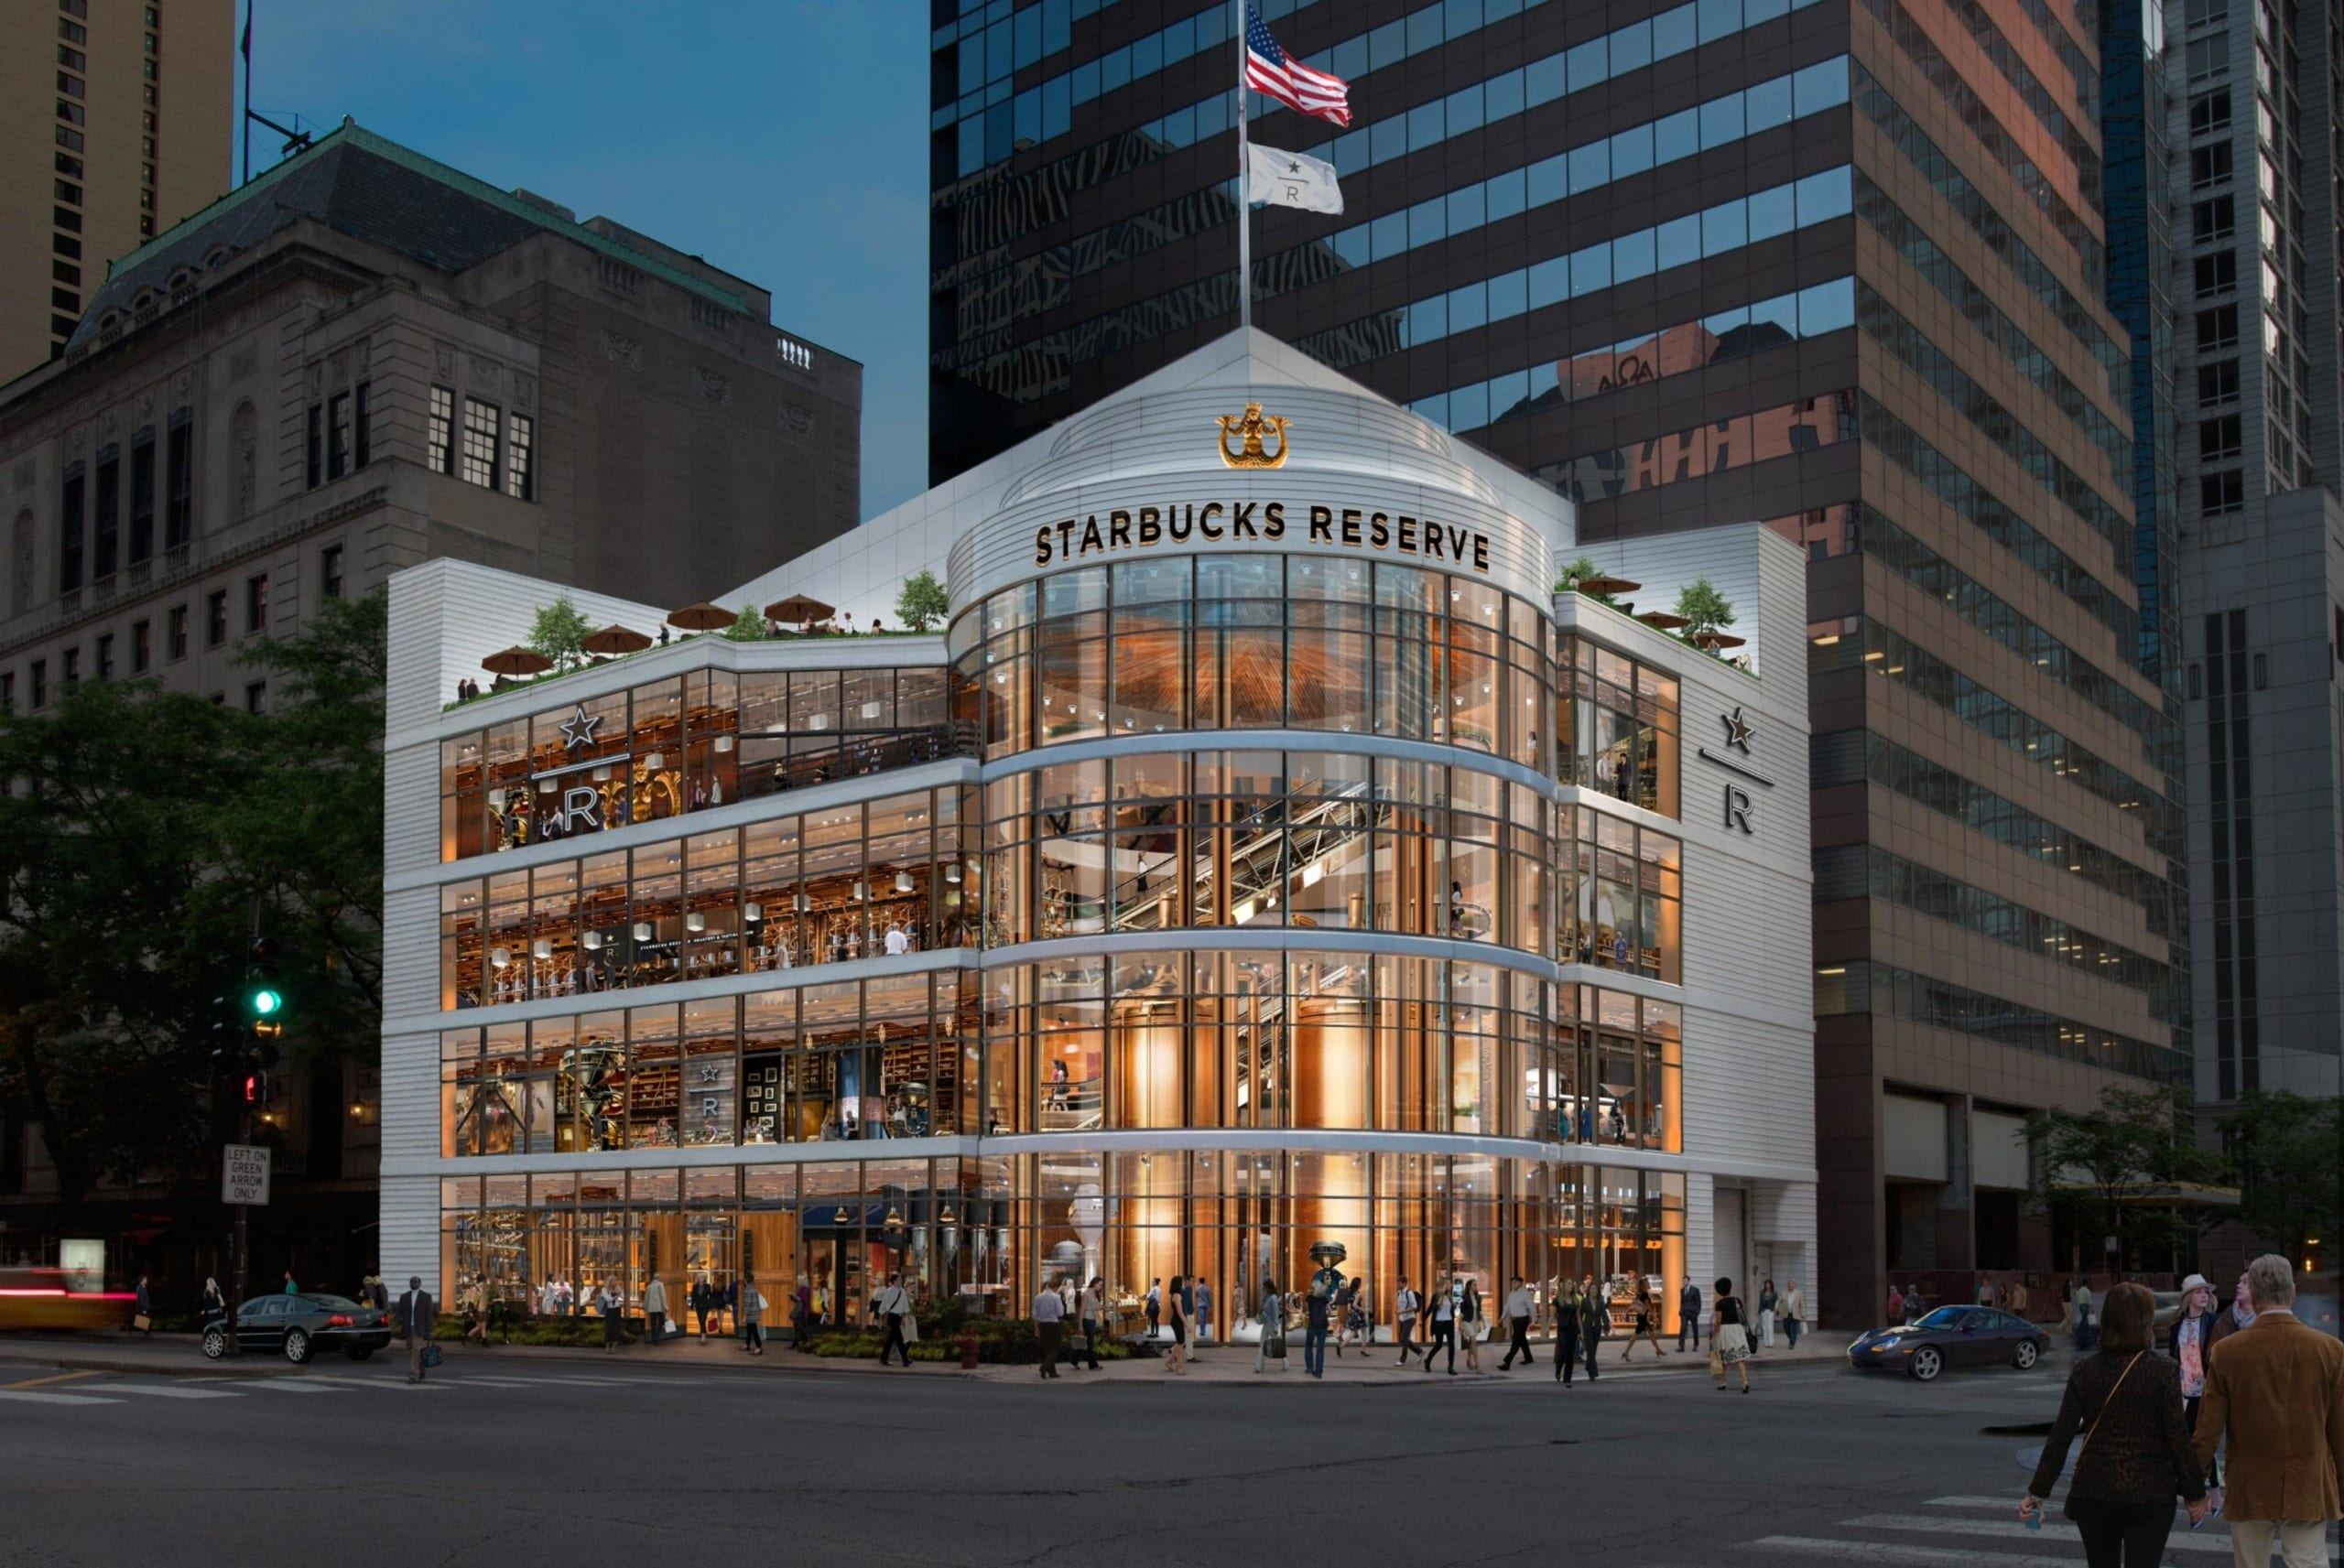 The 5 story Starbucks Roastery in Downtown Chicago